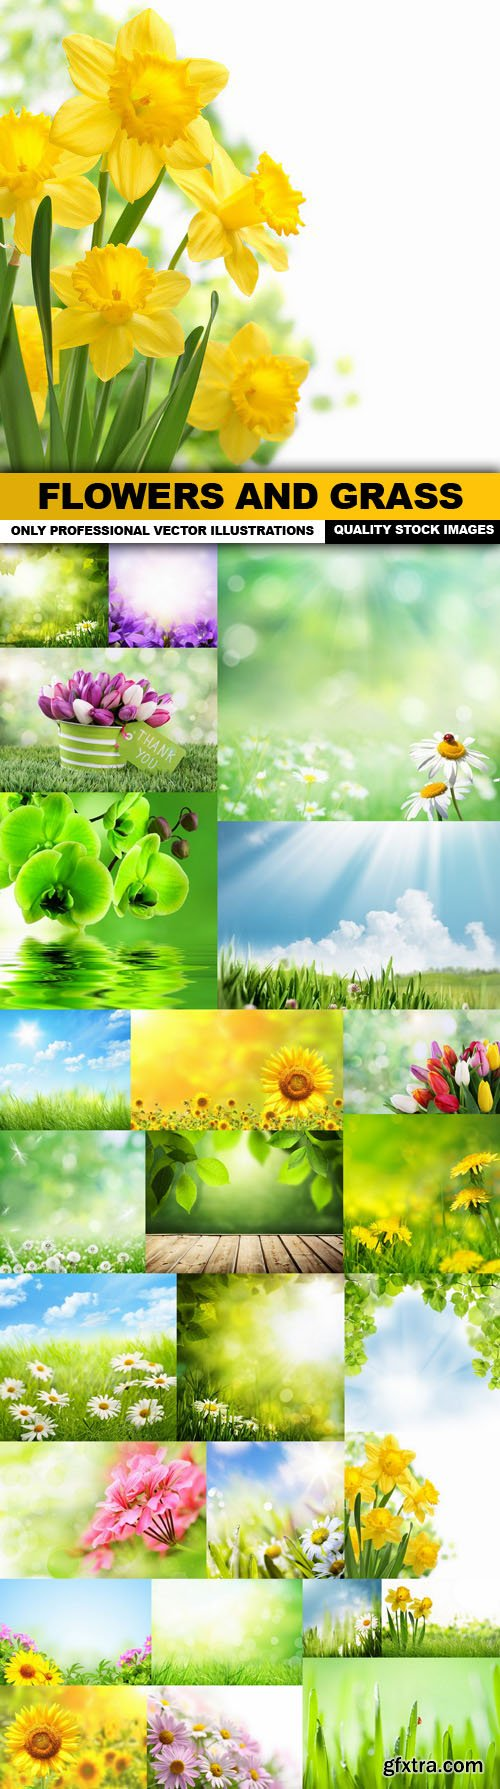 Flowers And Grass - 25 HQ Images